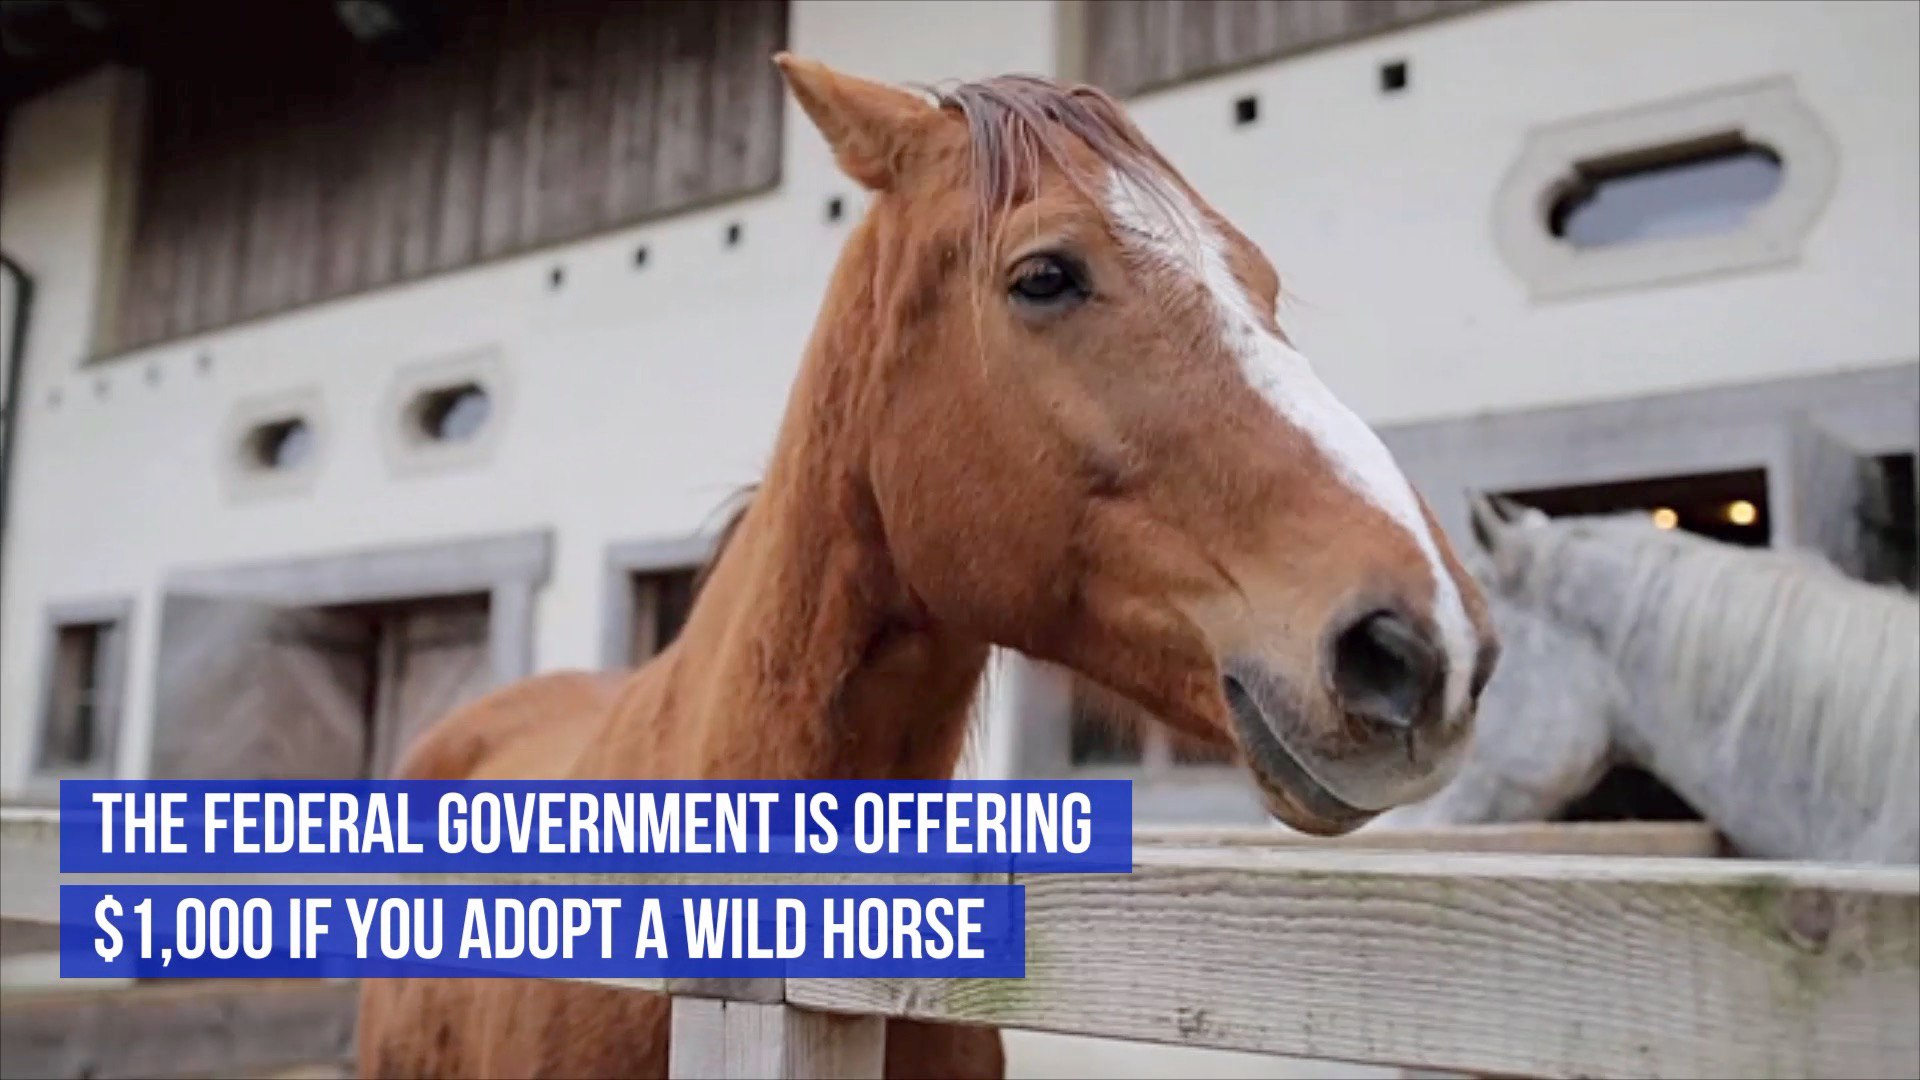 Adopt A Wild Horse And Get A Thousand Dollars